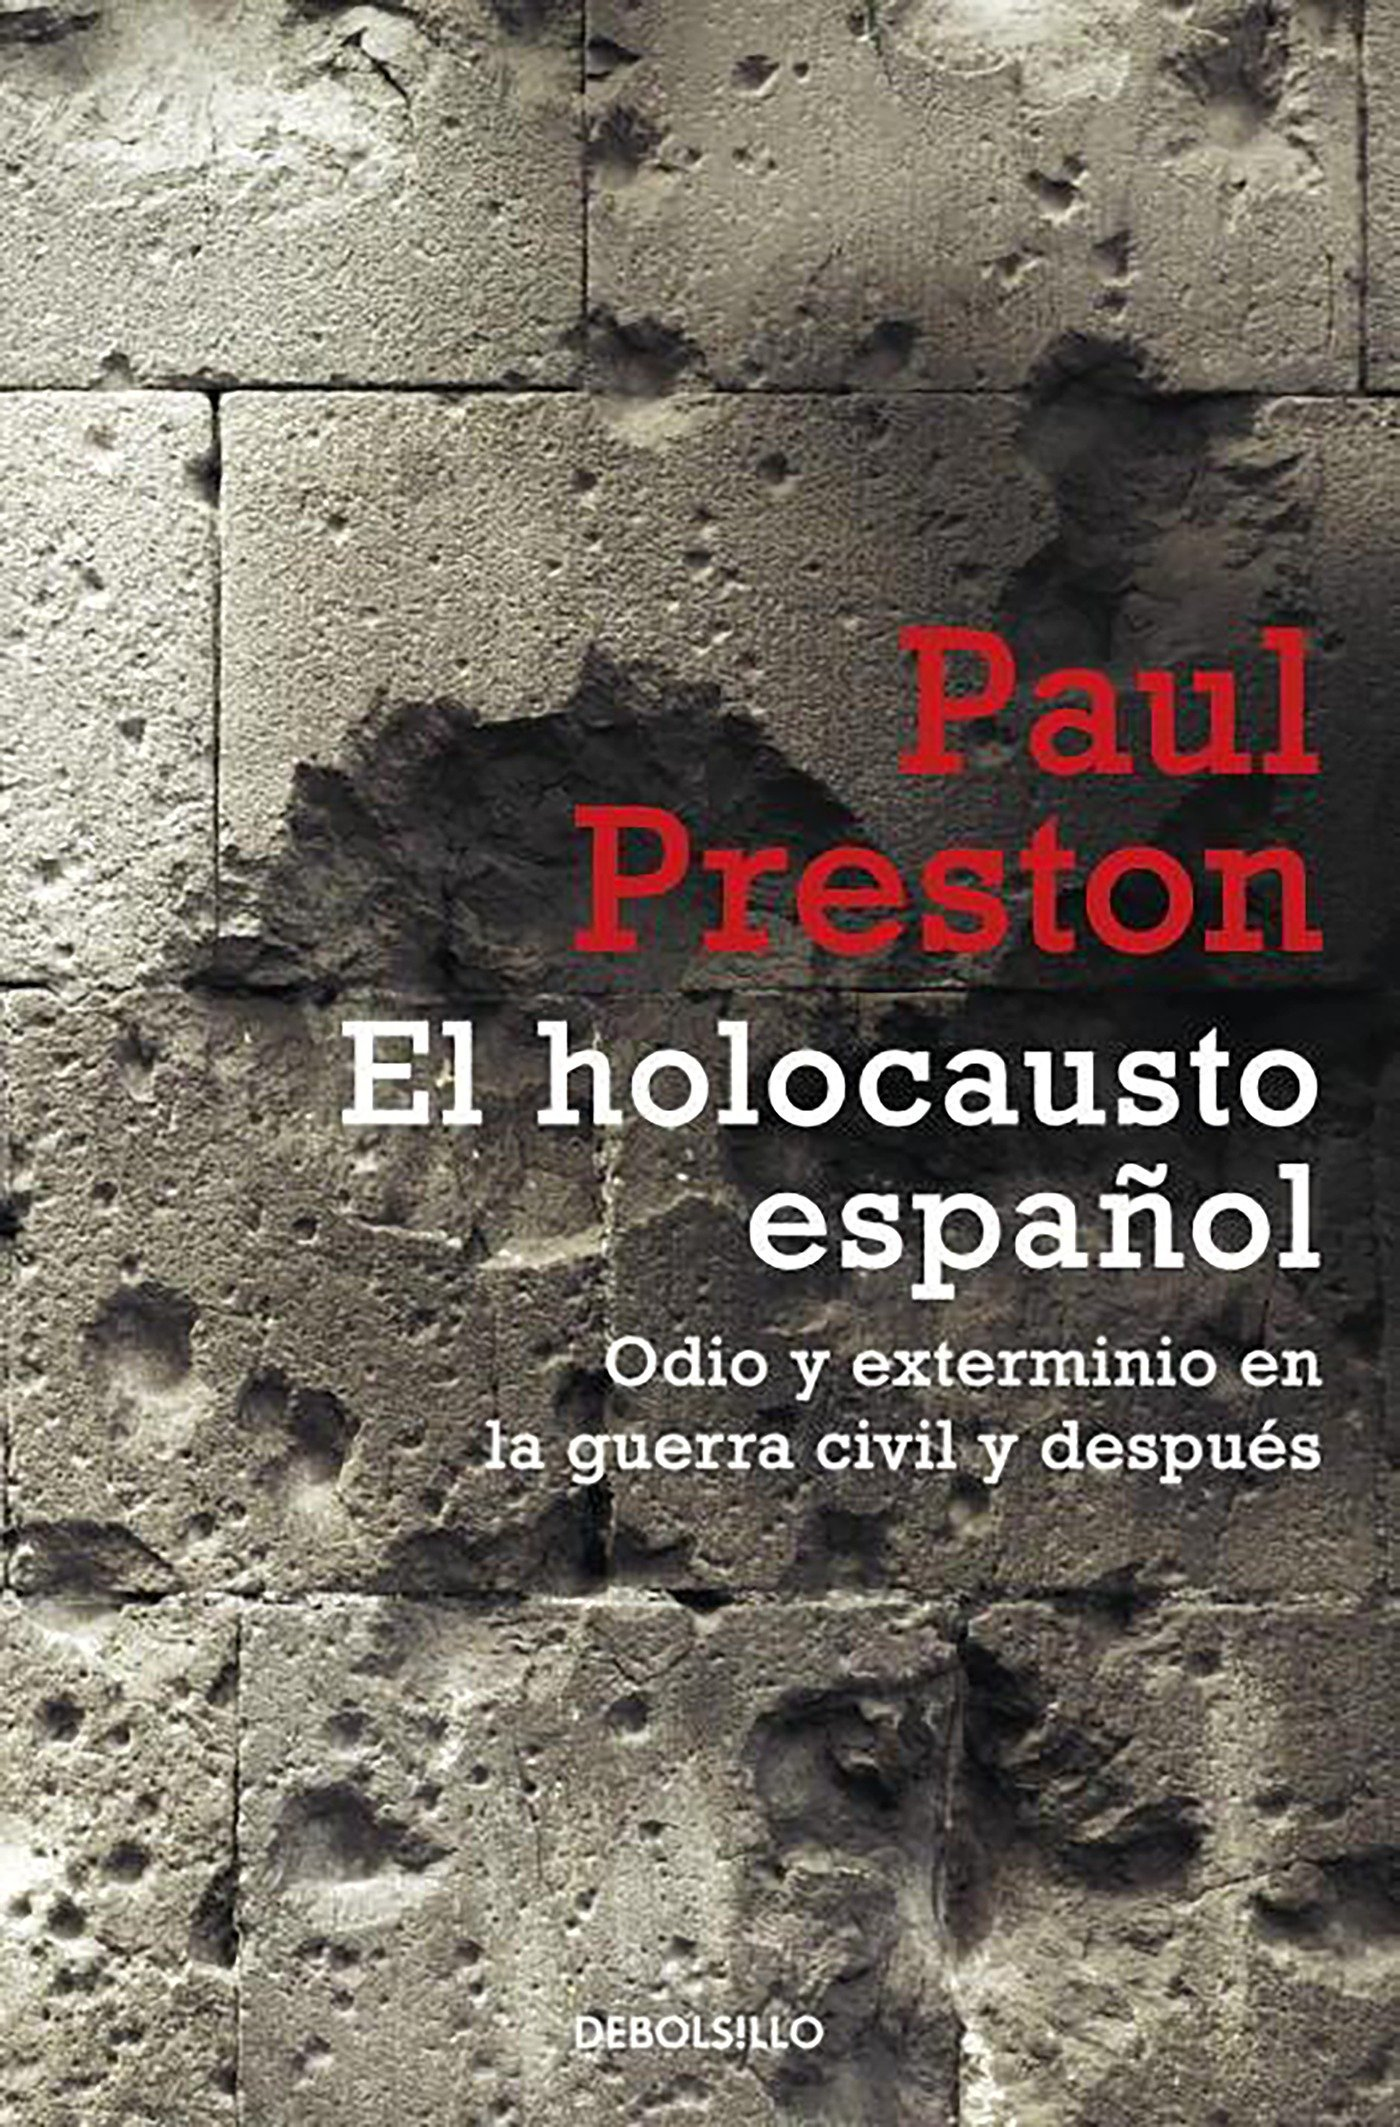 El holocausto español (Historia) (Spanish Edition): Paul Preston: 9788499894812: Amazon.com: Books